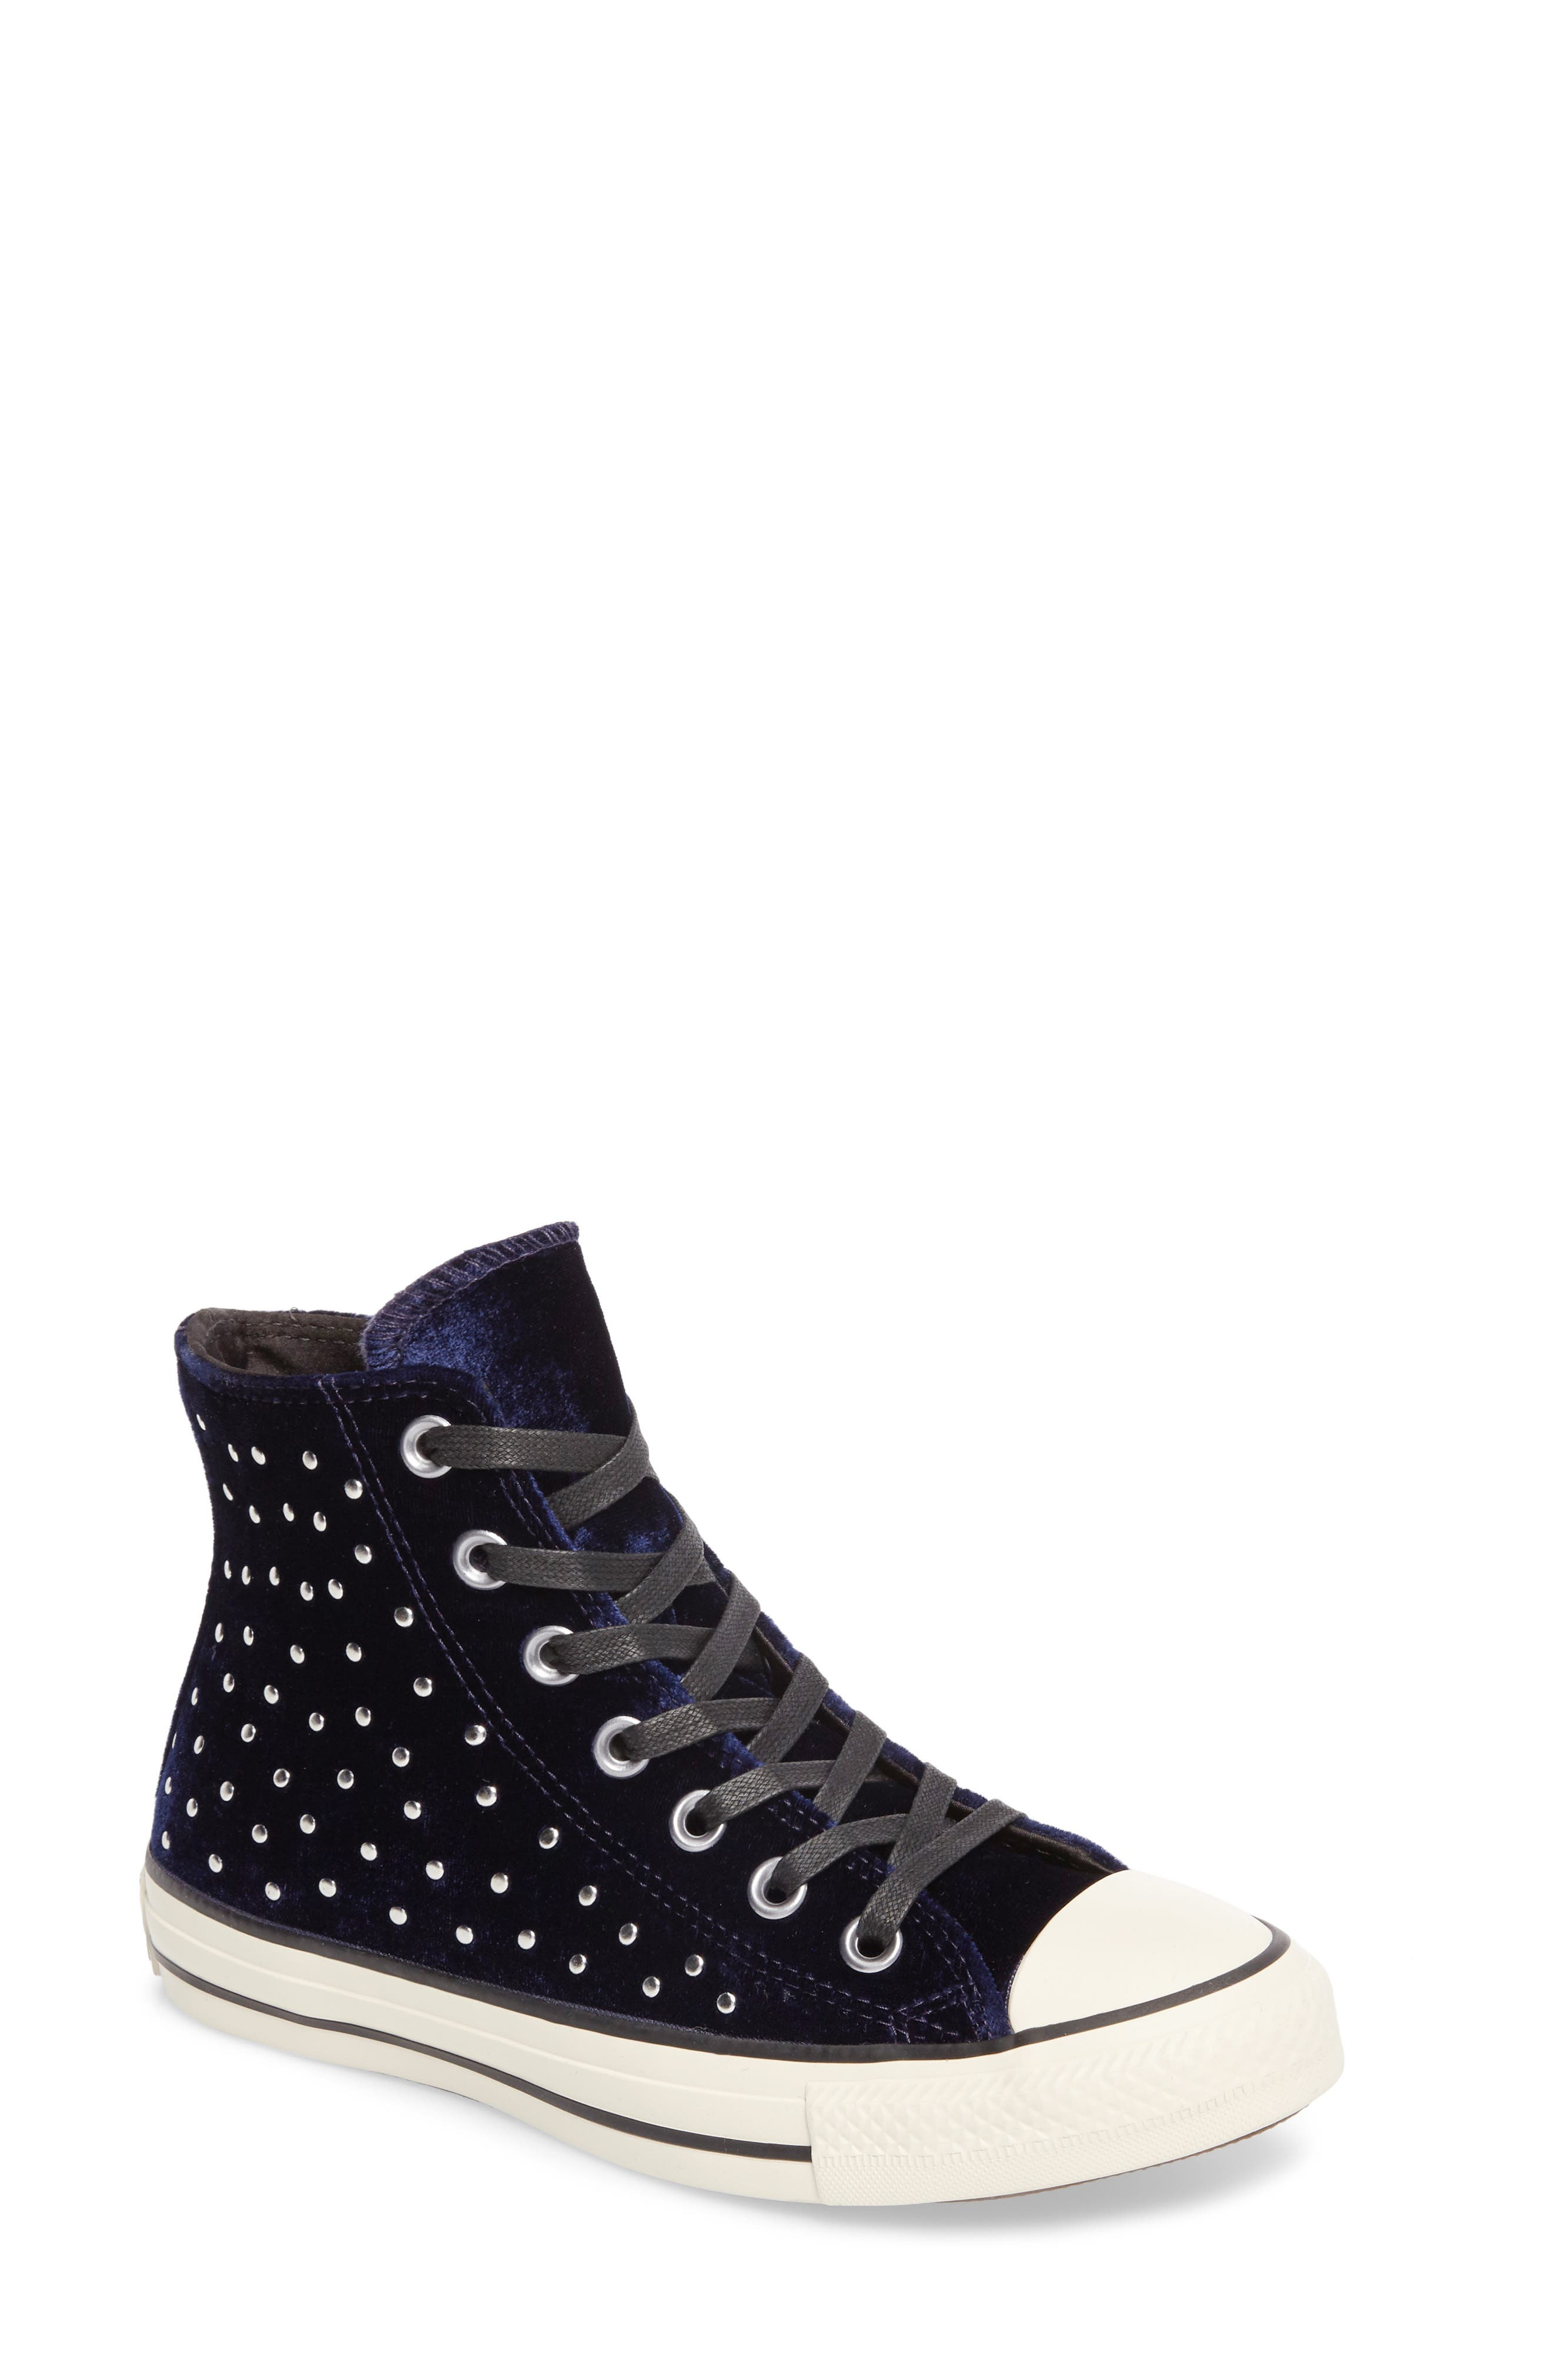 Chuck Taylor<sup>®</sup> All Star<sup>®</sup> Studded High Top Sneakers,                             Main thumbnail 2, color,